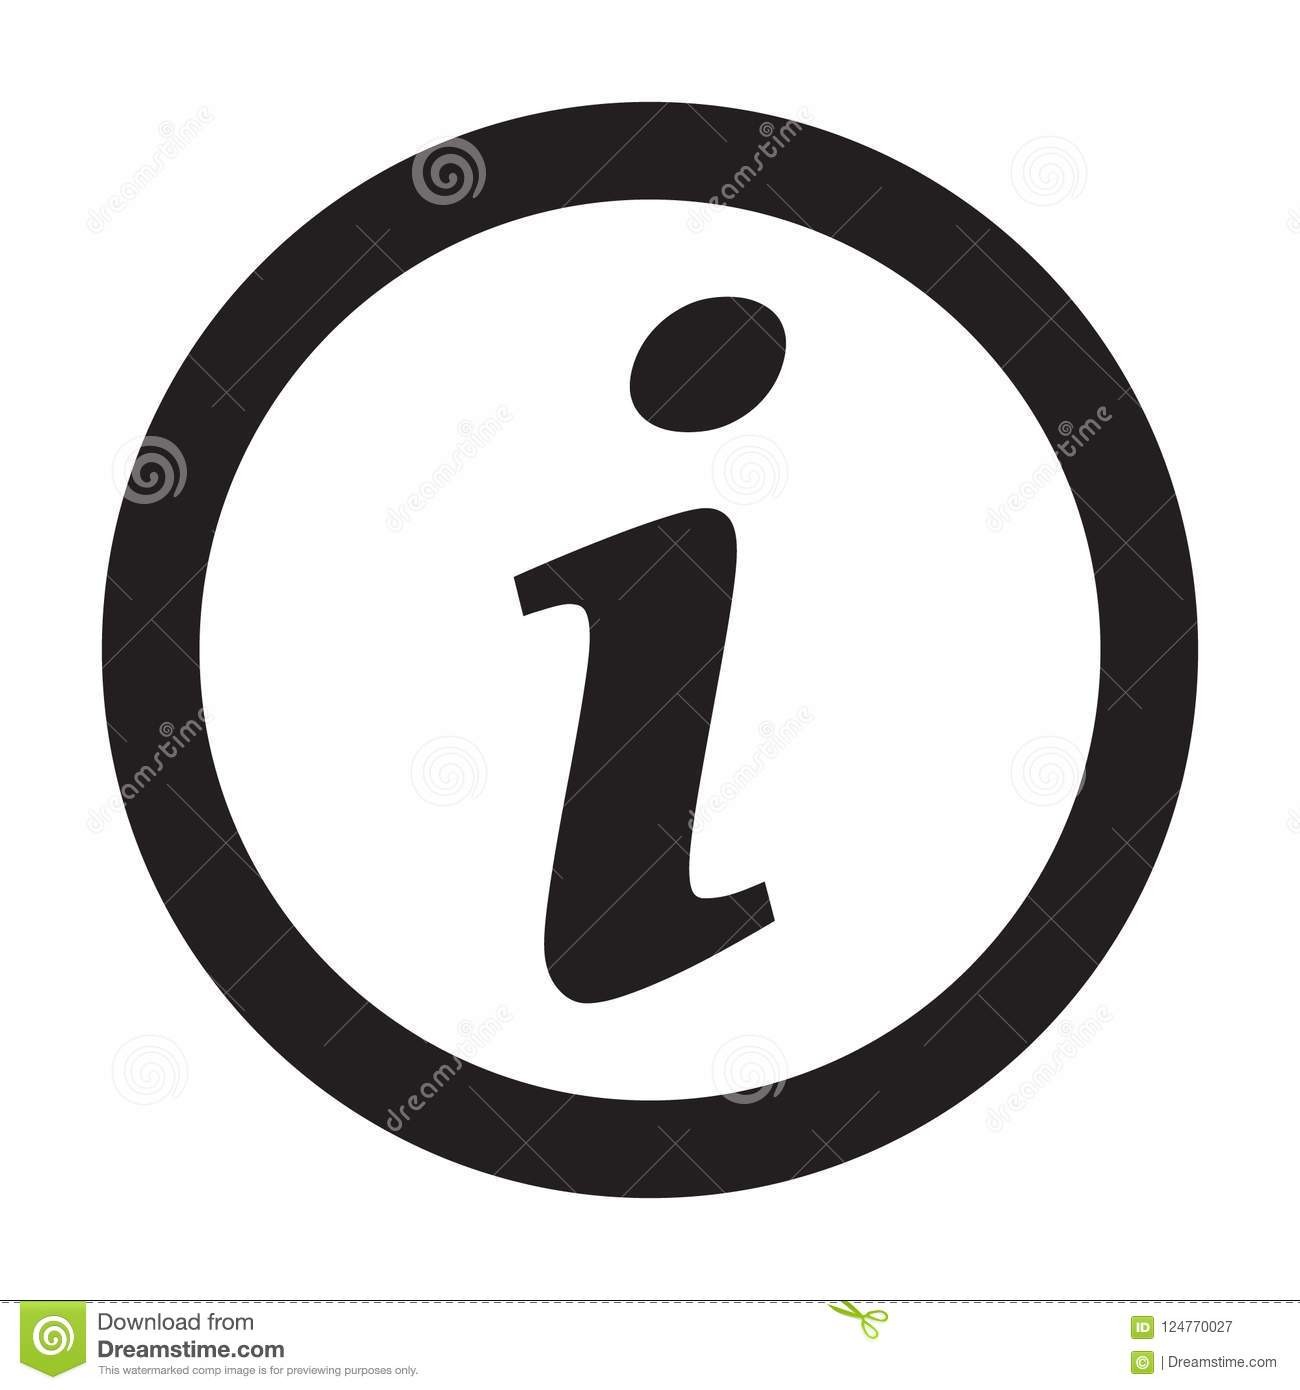 Information sign icon, info icon, letter i